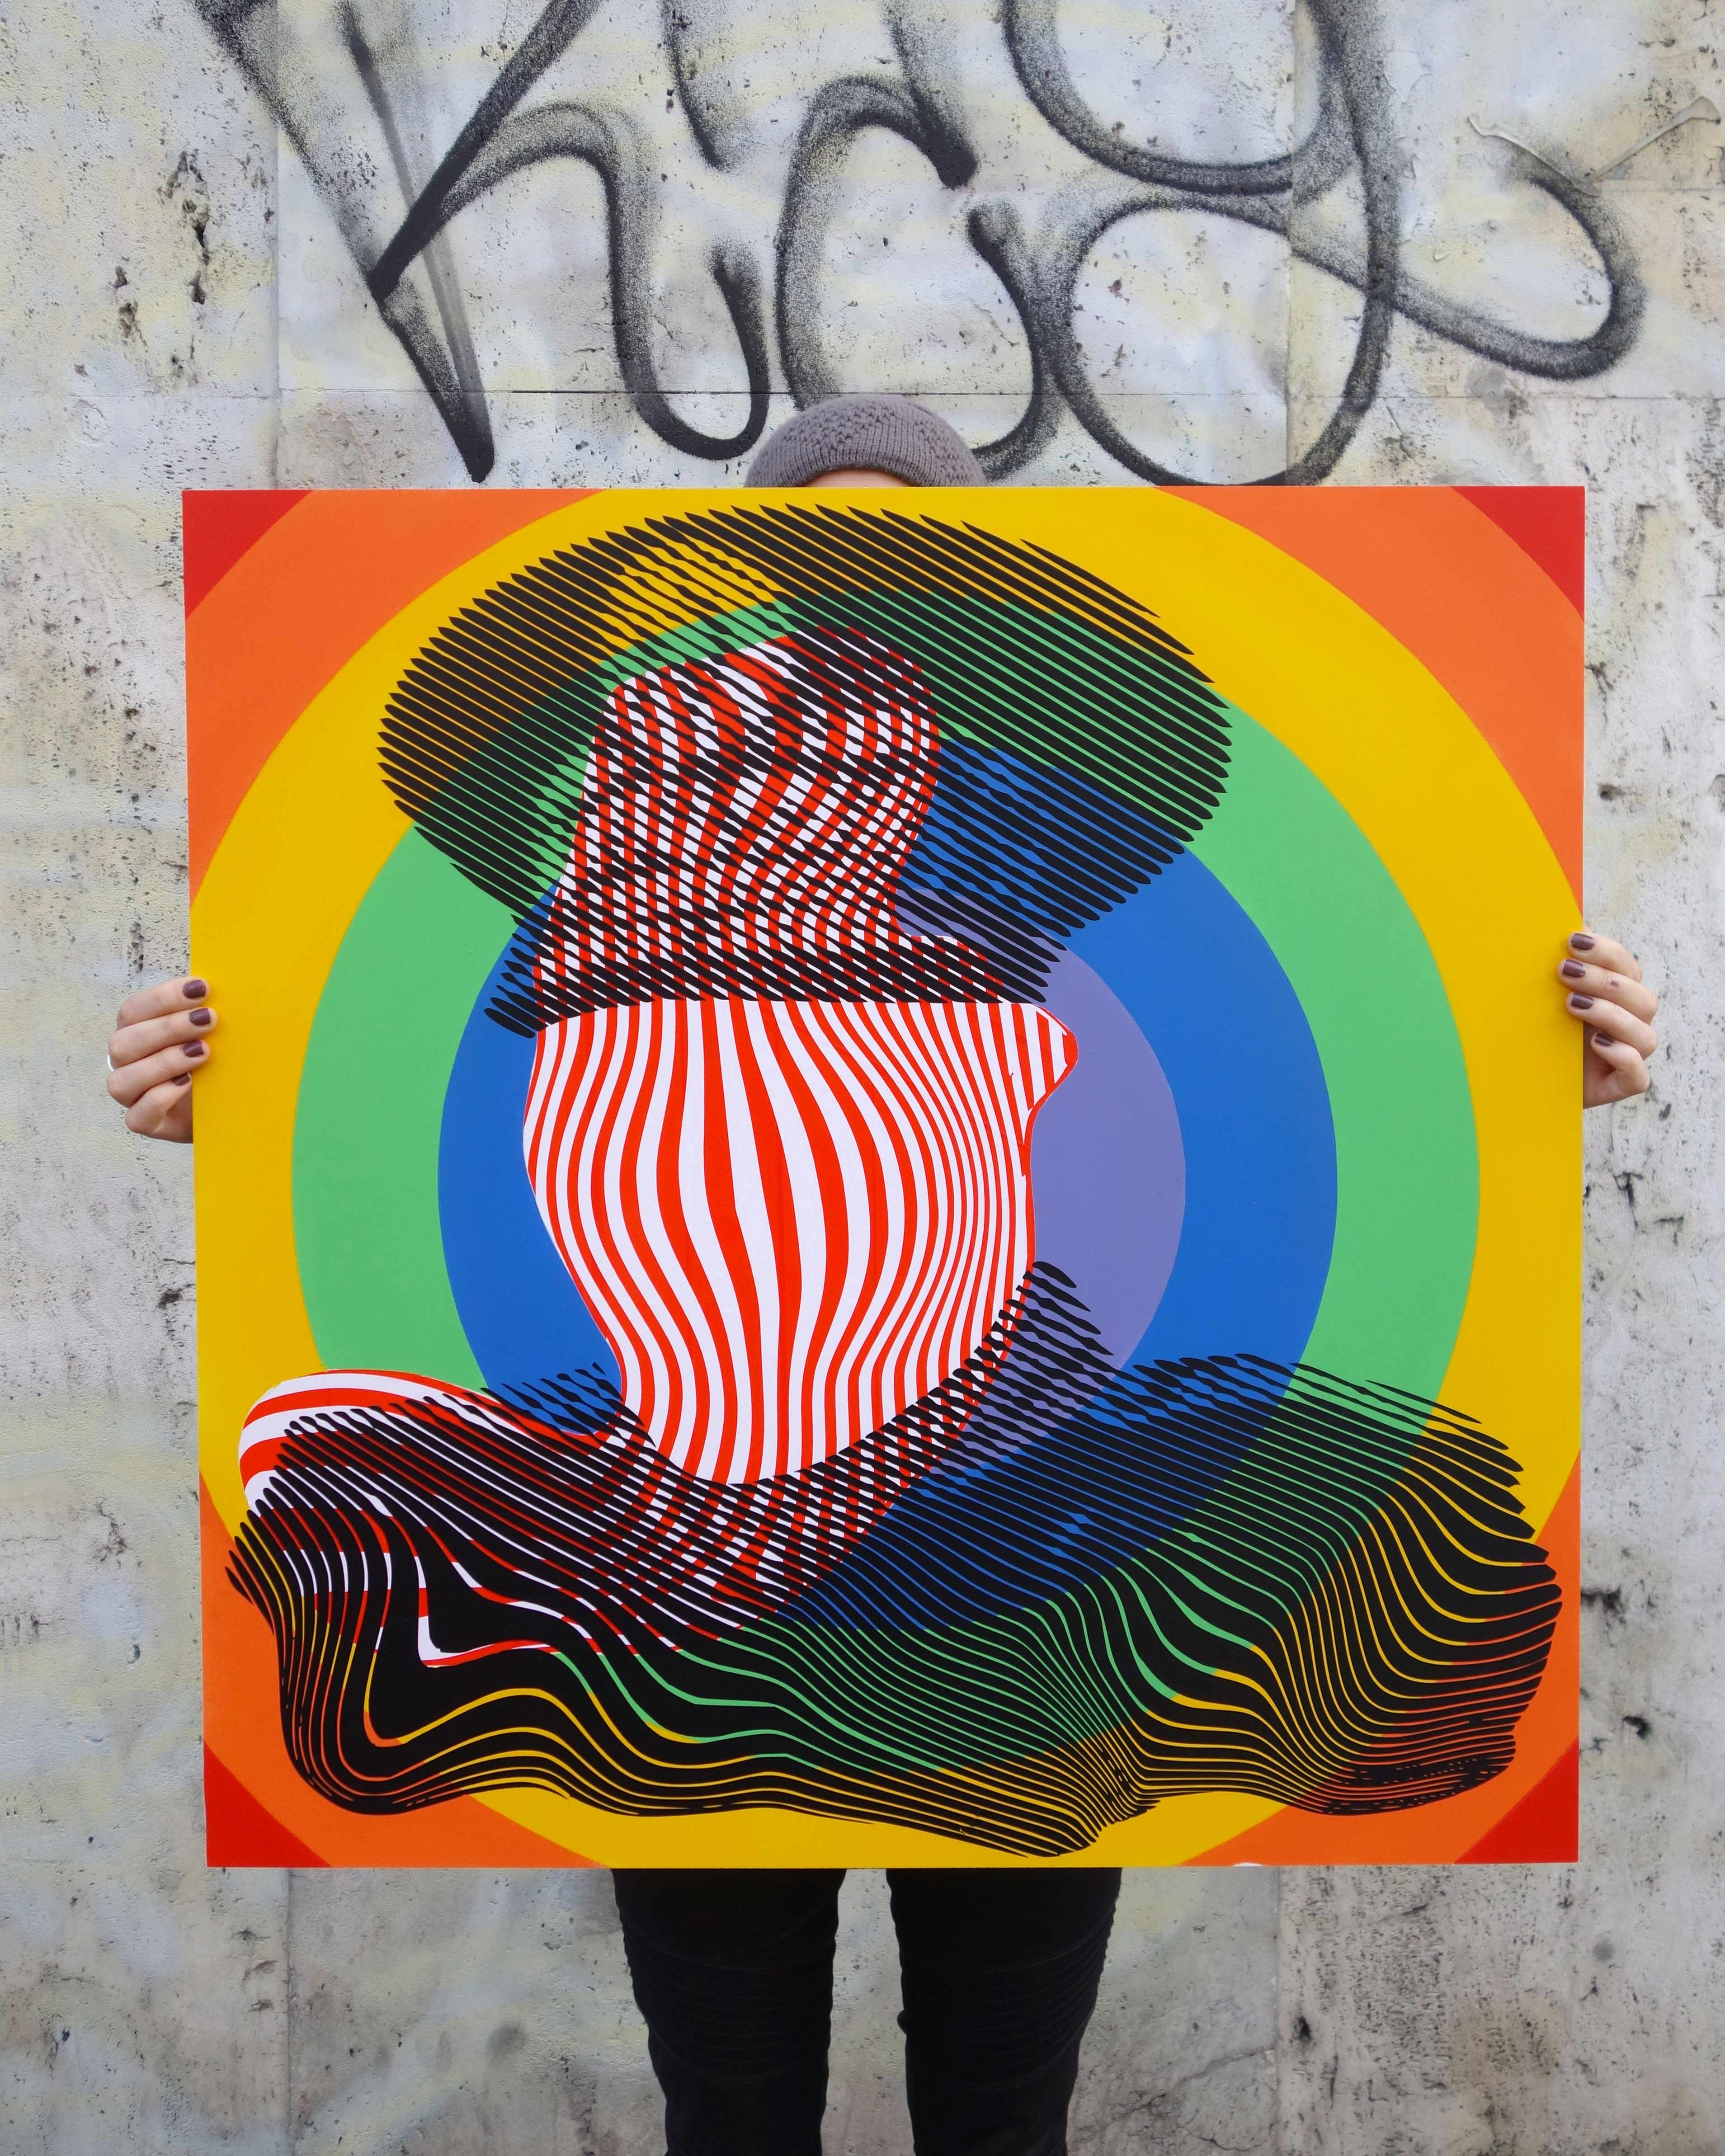 /media/1535/rainbow-general-2019-adhesive-foil-and-tape-on-forex-70x70x01-cm-milan.jpg